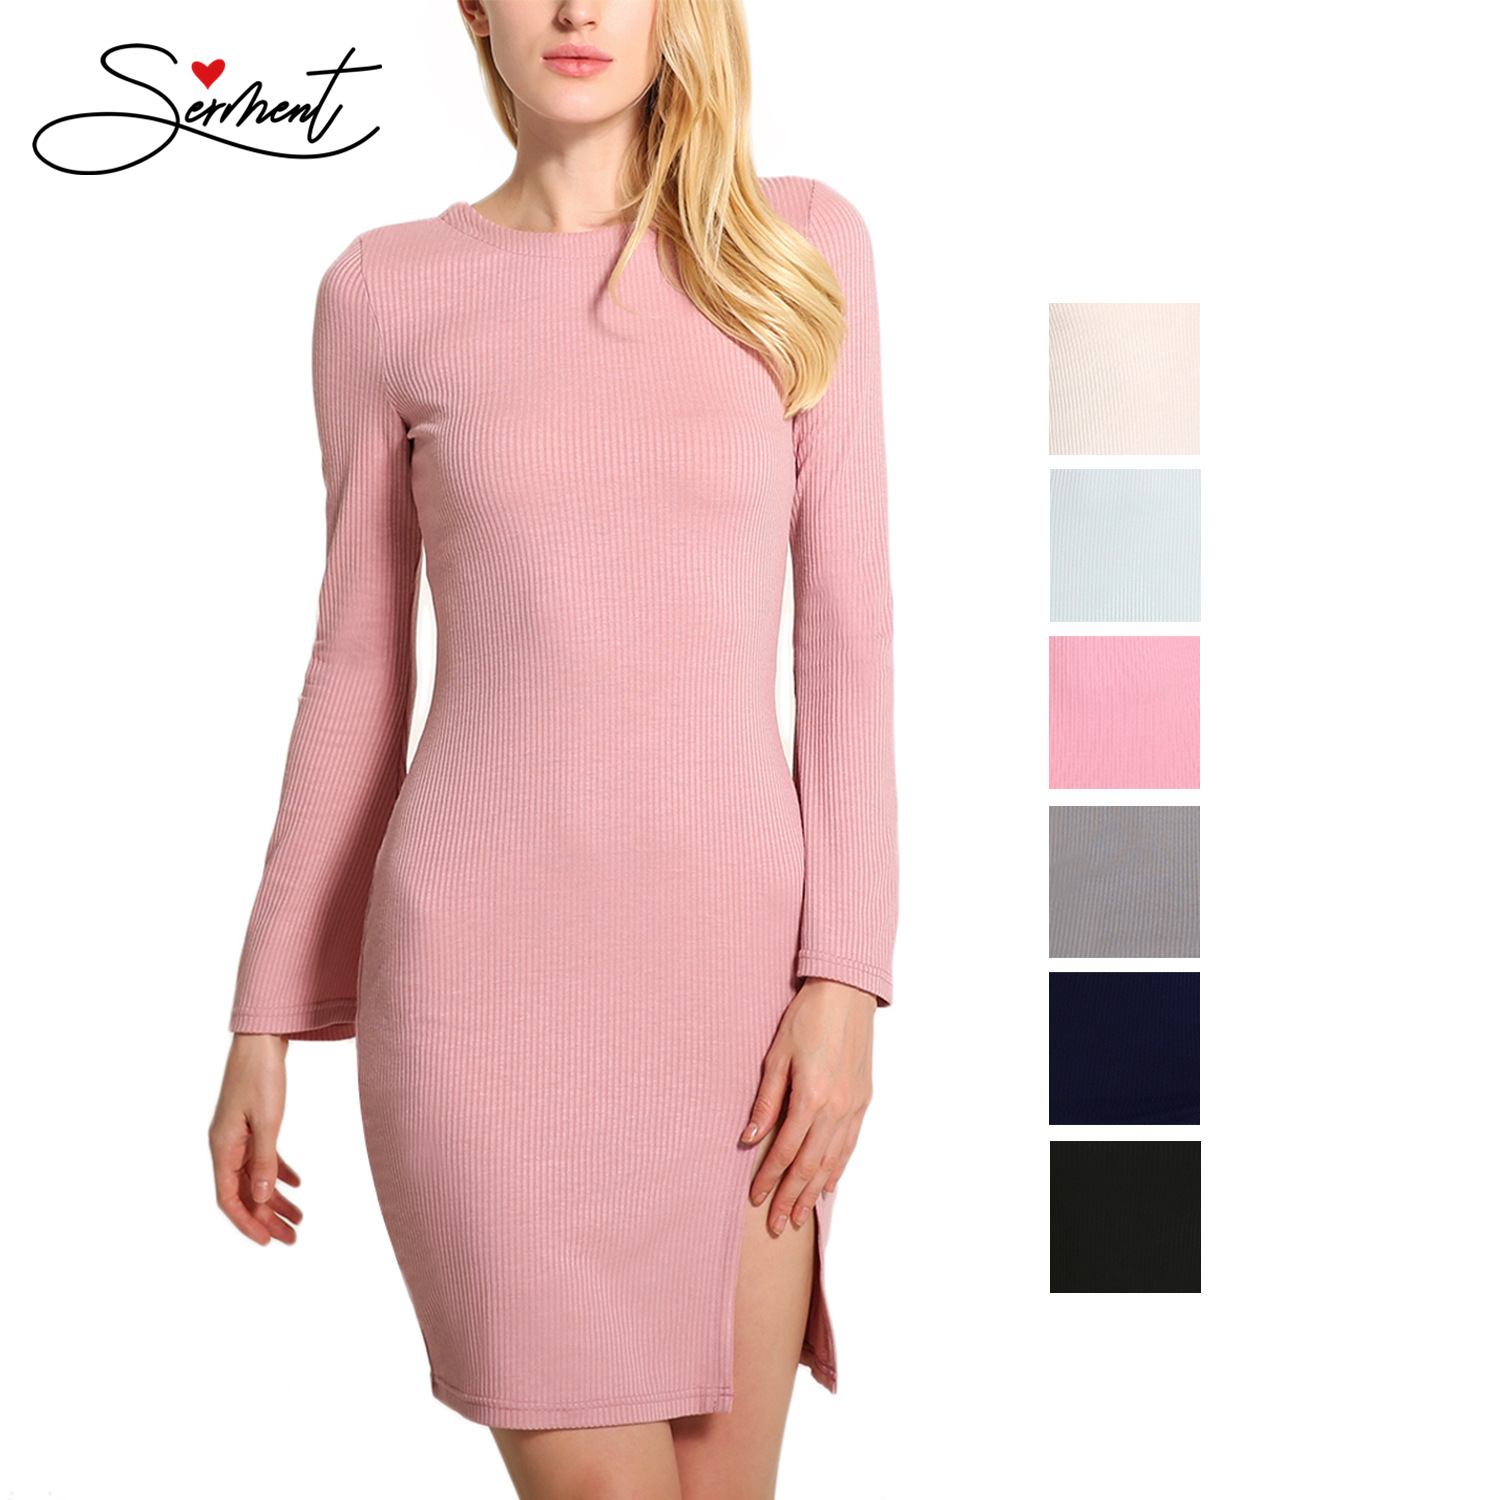 OLLYMURS New Elegant Woman Evening Gown Pink Sexy Flared Sleeve Hip Dress Suitable For Formal Parties